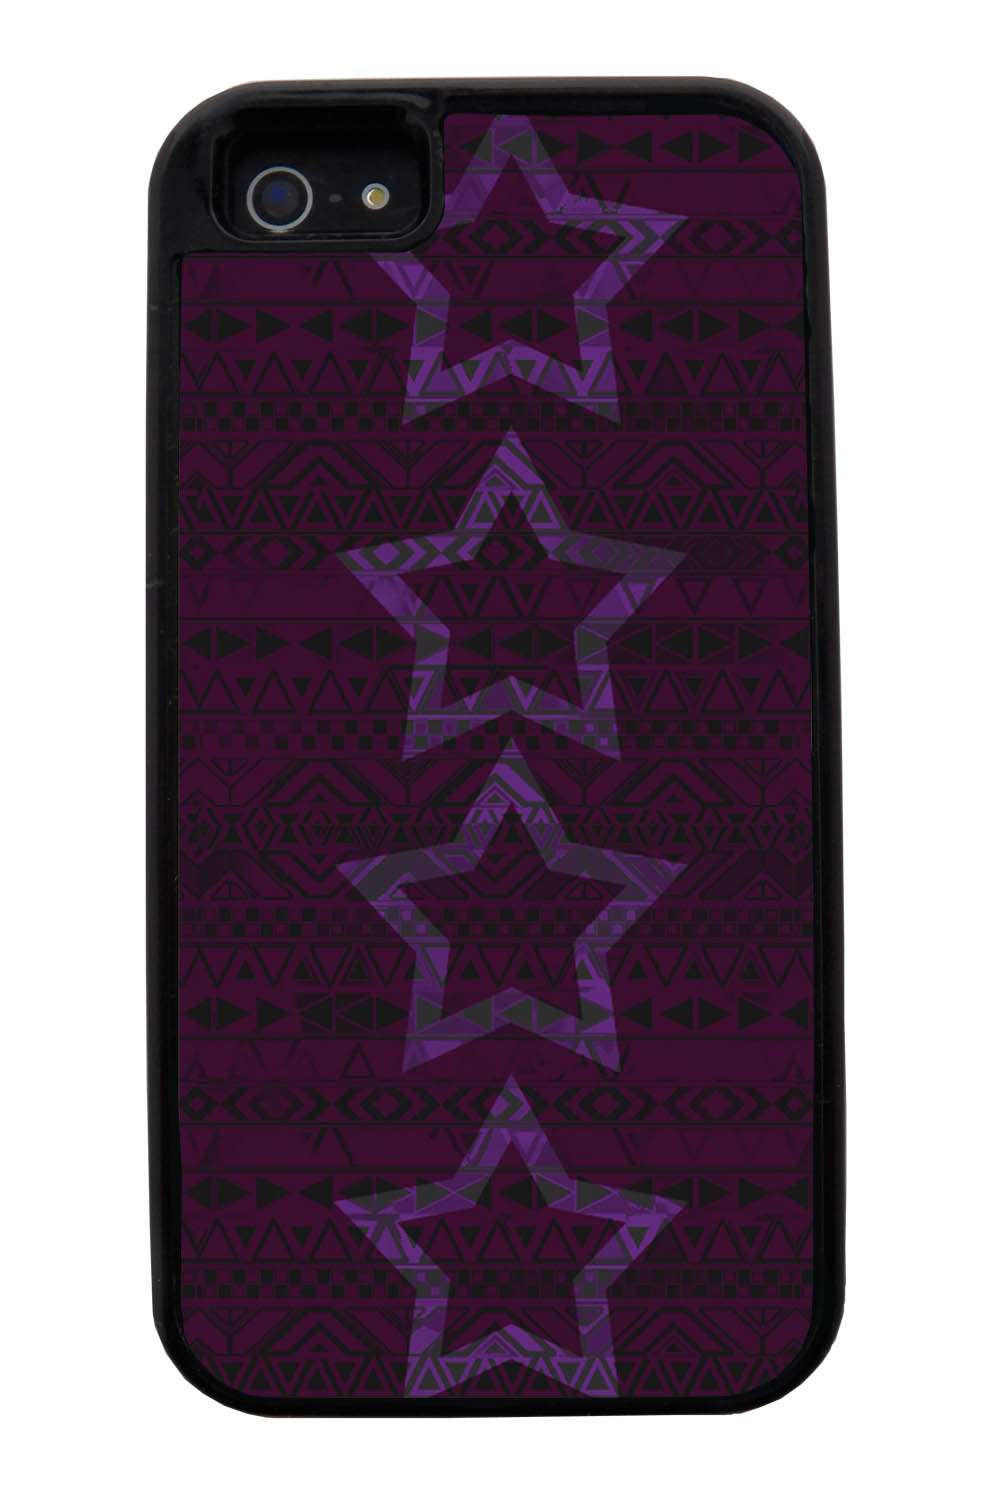 Apple iPhone 5 / 5S Aztec Case - Purple Stars - Geometric - Black Tough Hybrid Case